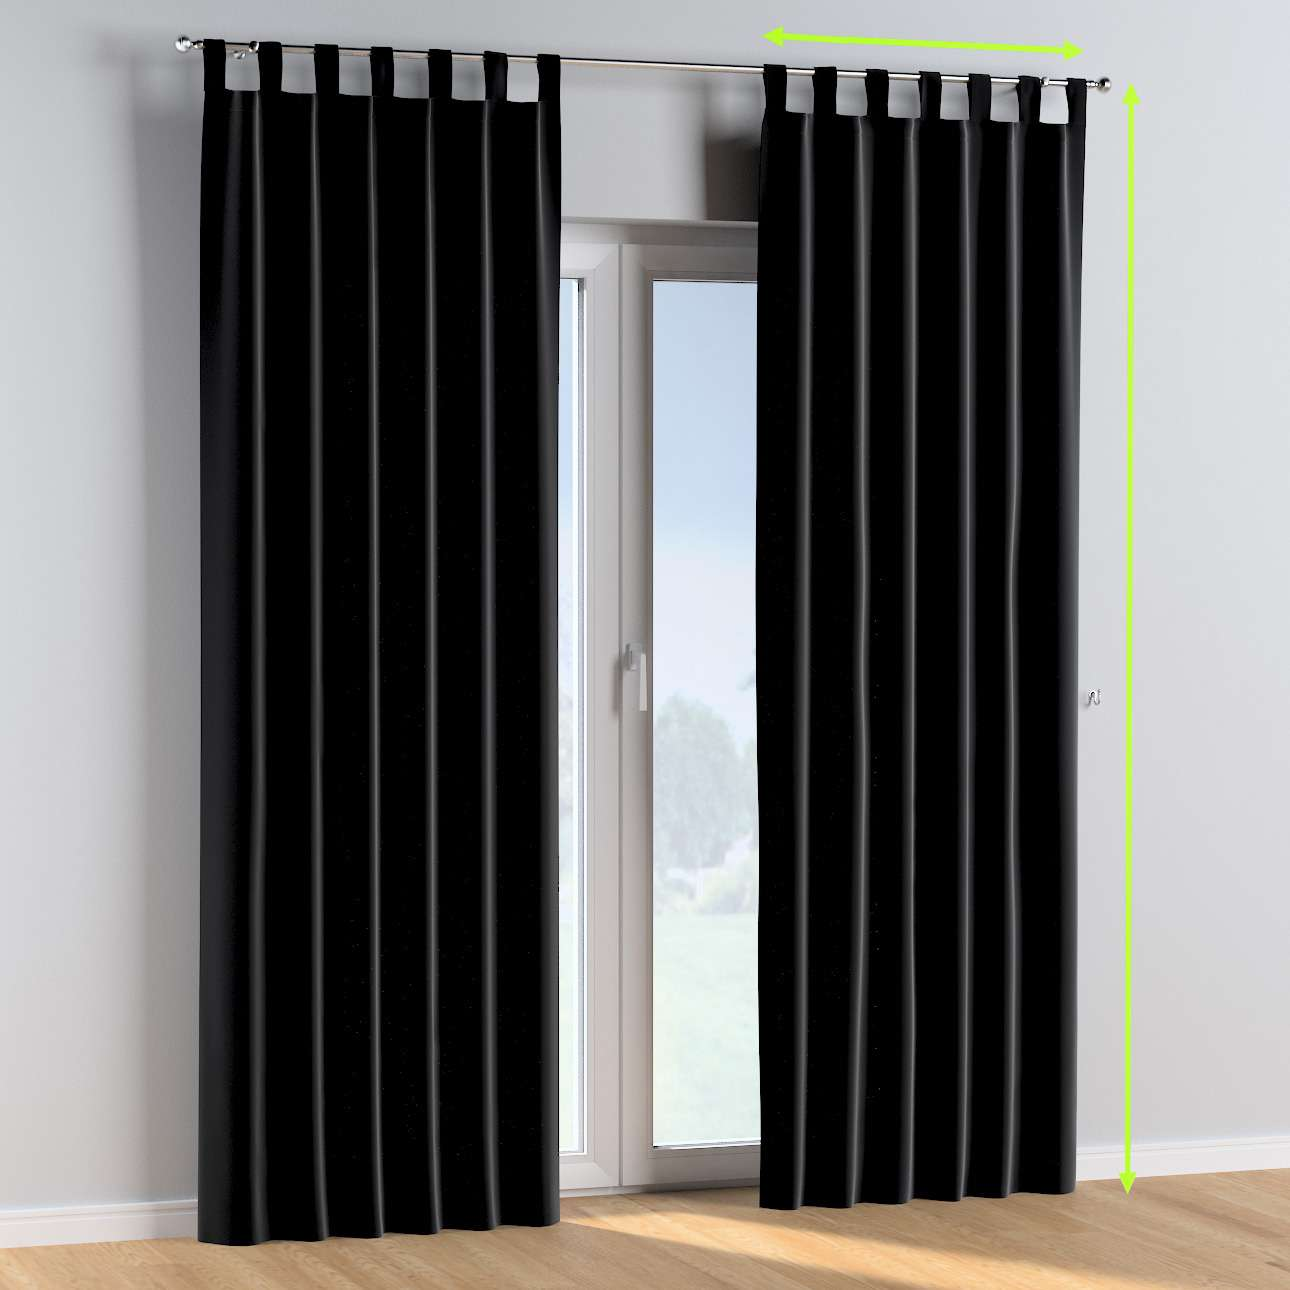 Tab top curtains in collection Posh Velvet, fabric: 704-17